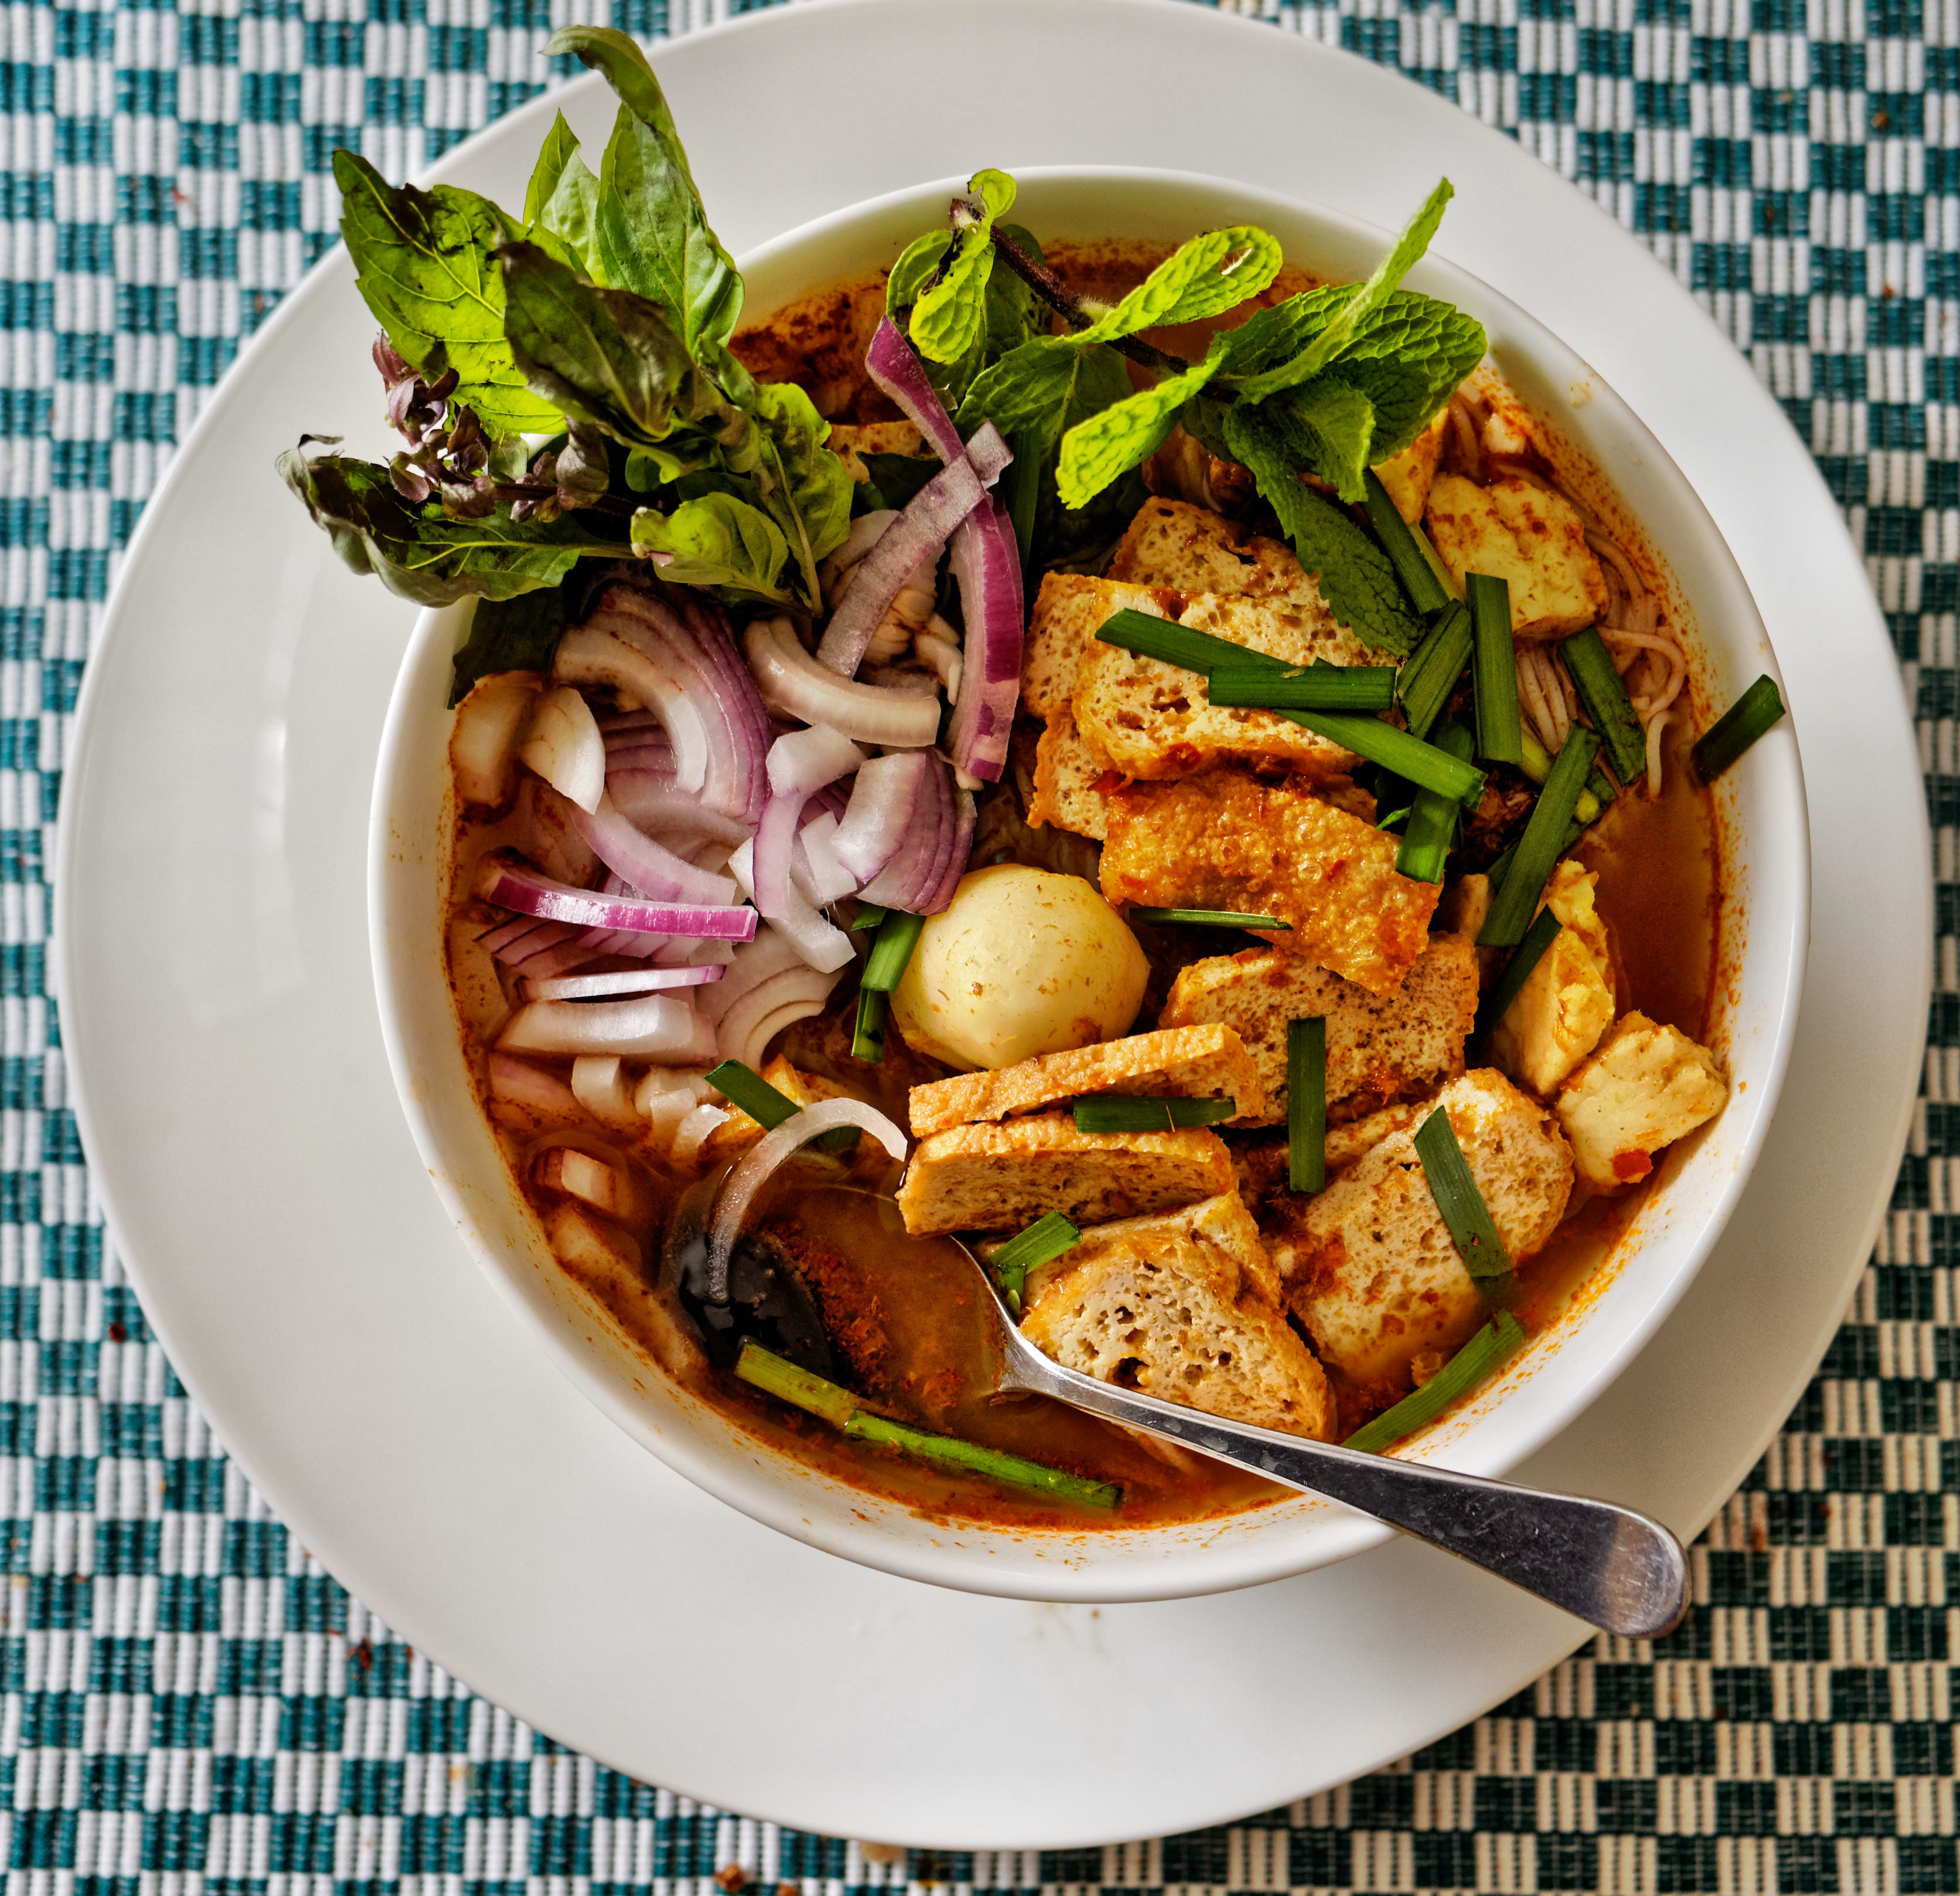 This should be Laksa-assam-1.jpeg.  Is it missing?